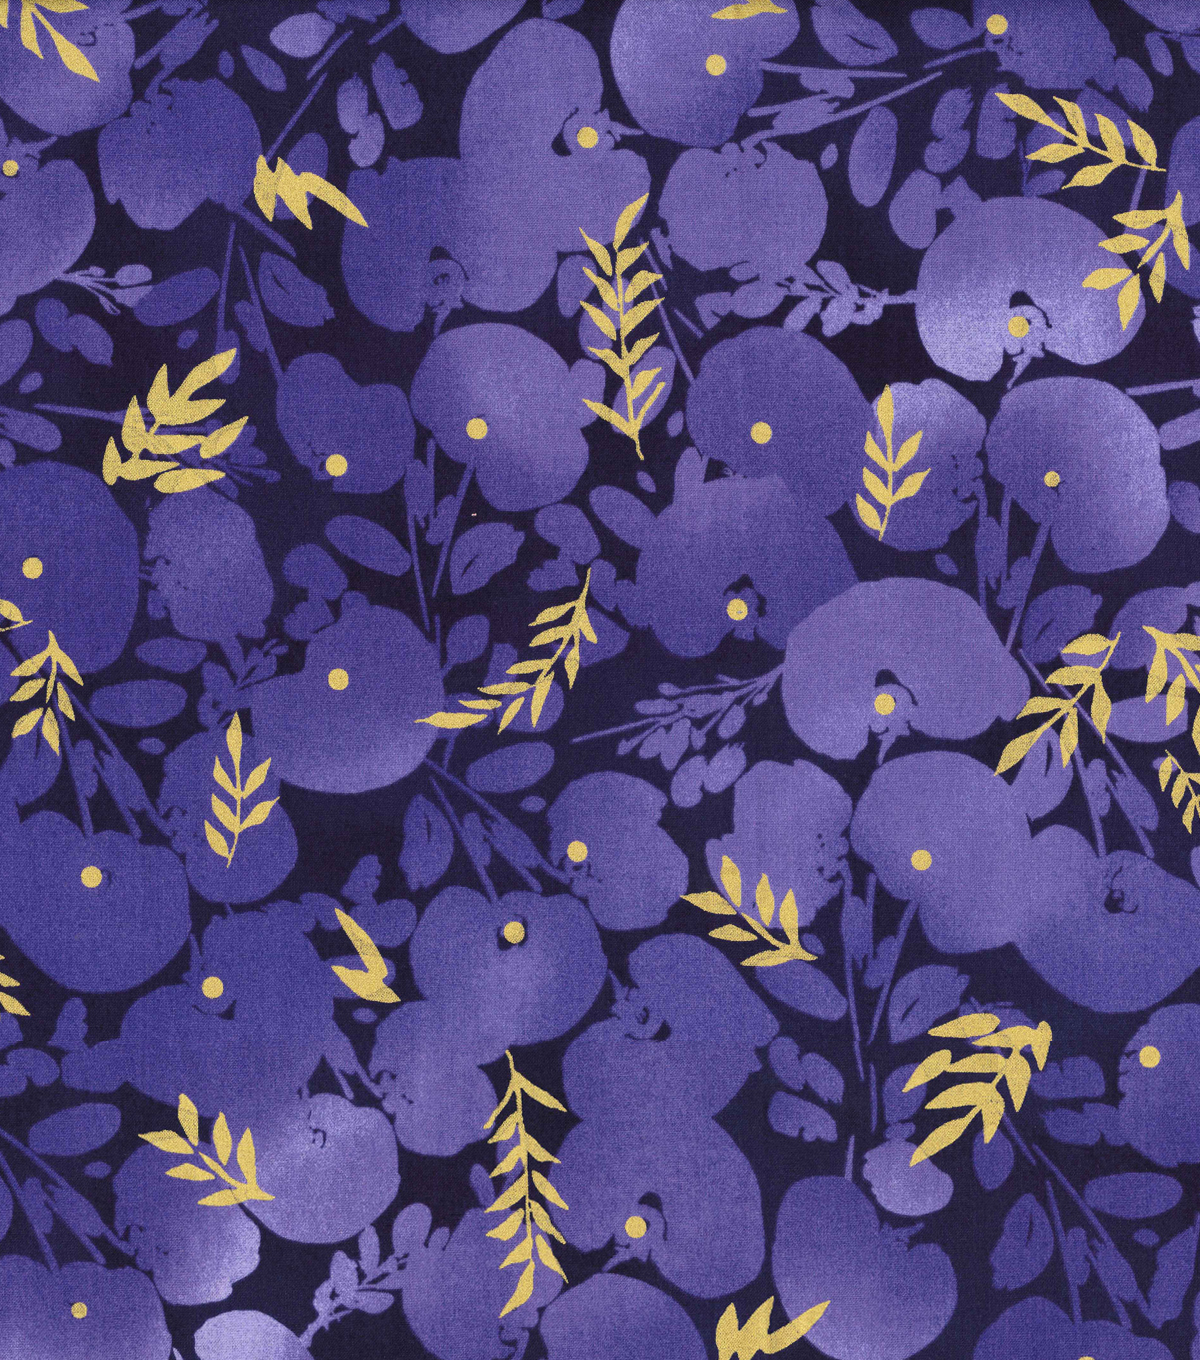 Kathy Davis® Cotton Fabric 44''-Large Tonal Floral on Navy